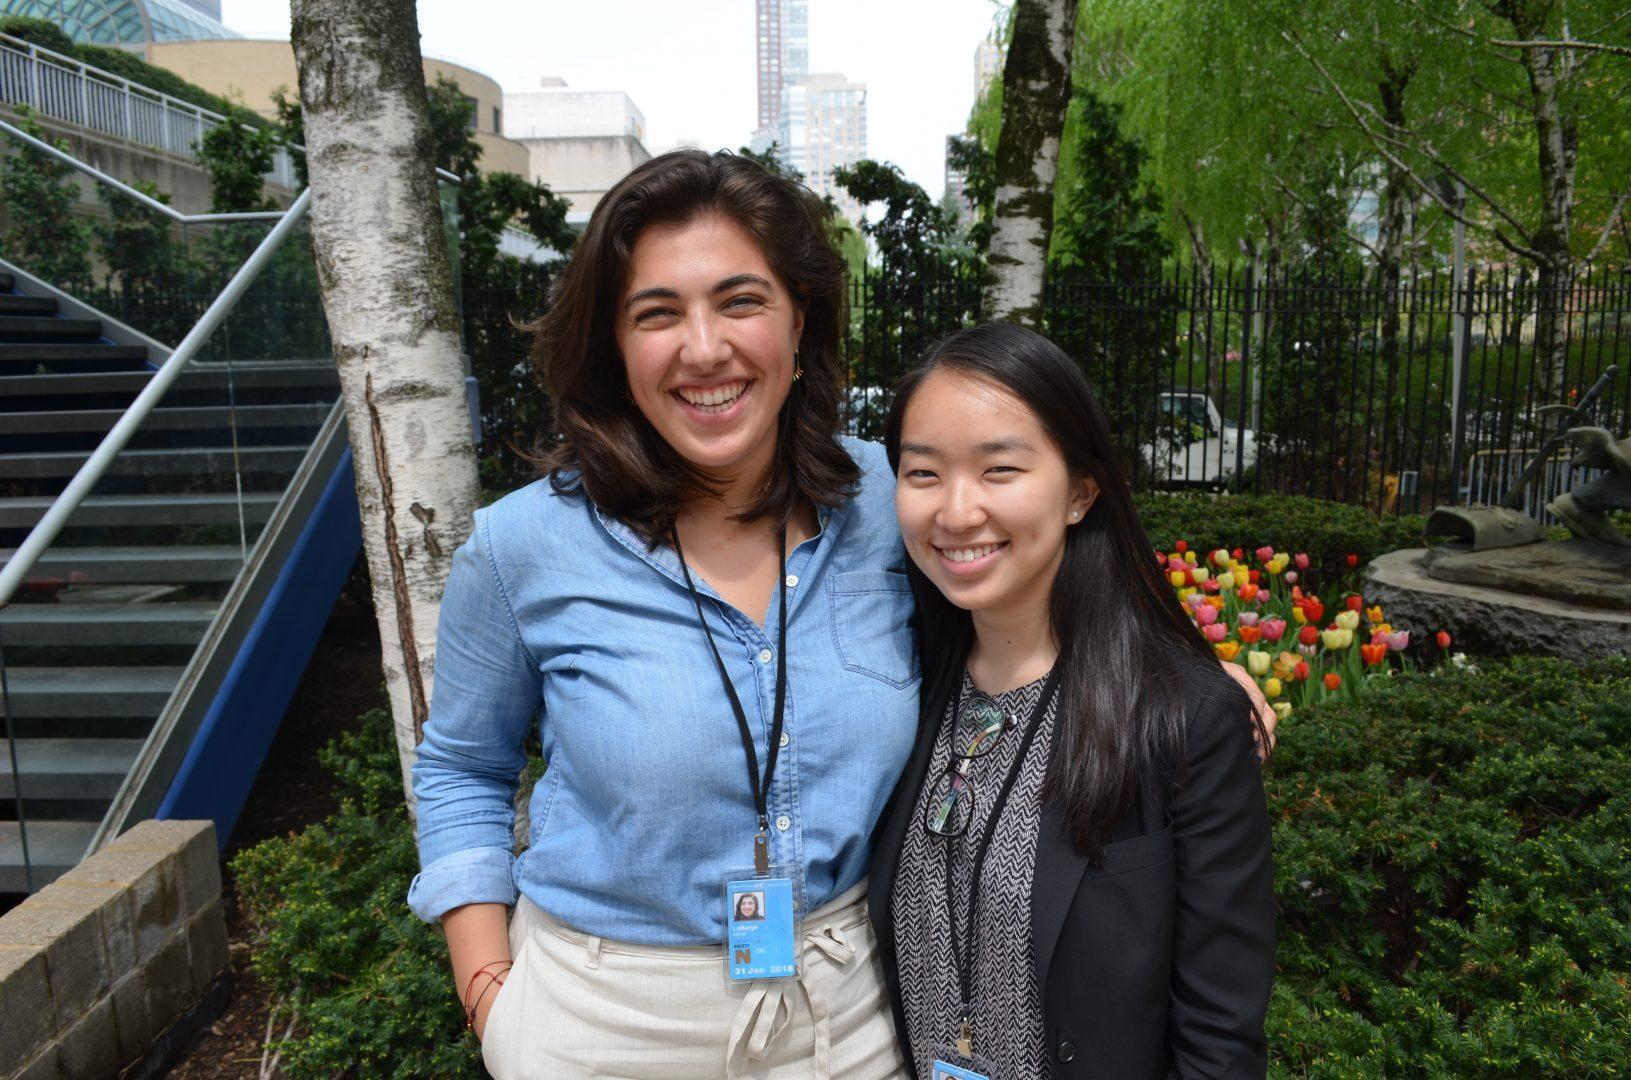 Olivia LaBarge (left), FCLC '19, received an Honorable Mention at the Model United Nations Conference. (JILLIAN JAYMES/The Observer)